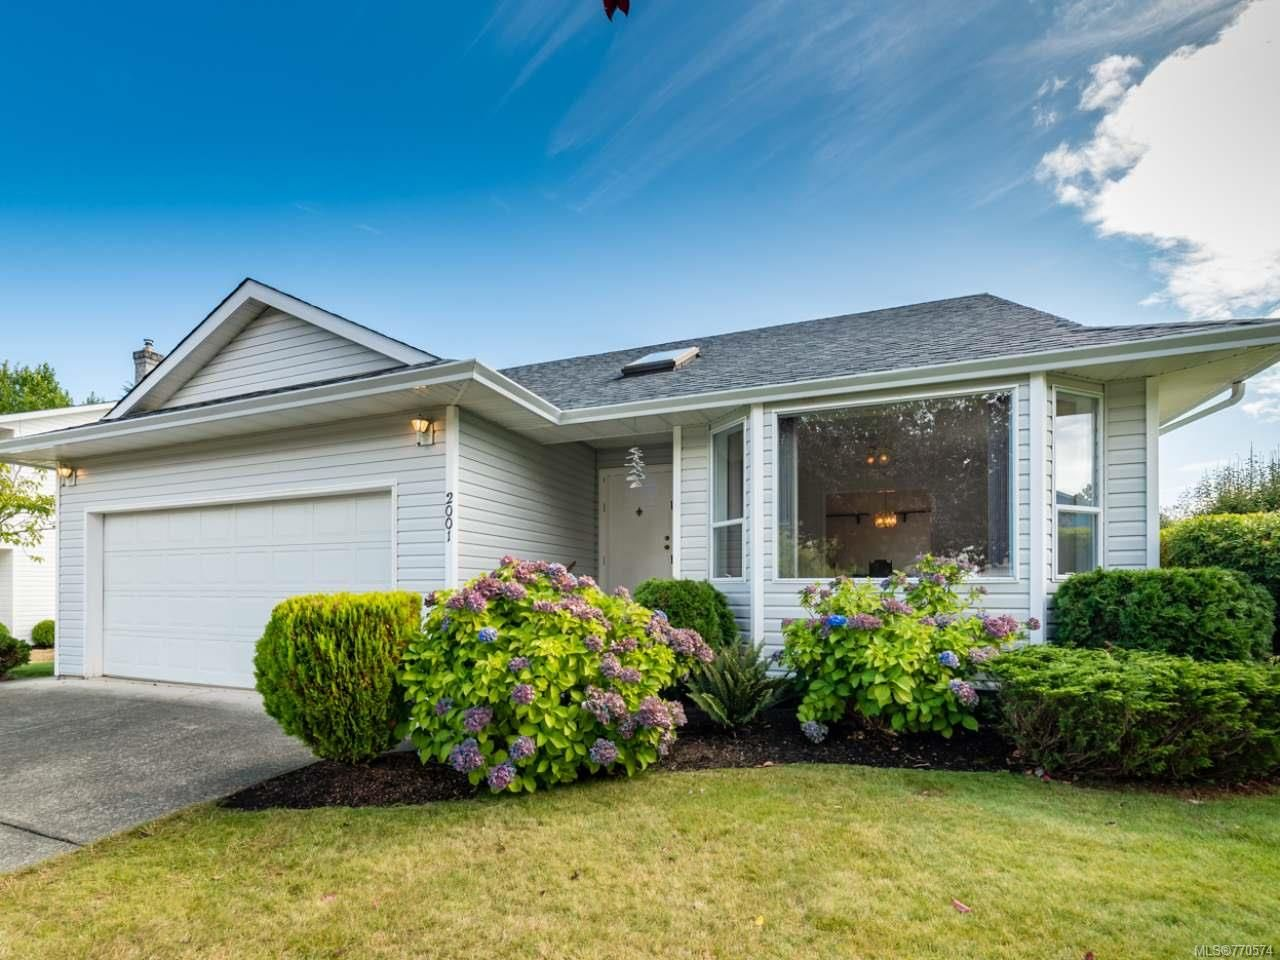 Main Photo: 2001 VALLEY VIEW DRIVE in COURTENAY: CV Courtenay East House for sale (Comox Valley)  : MLS®# 770574